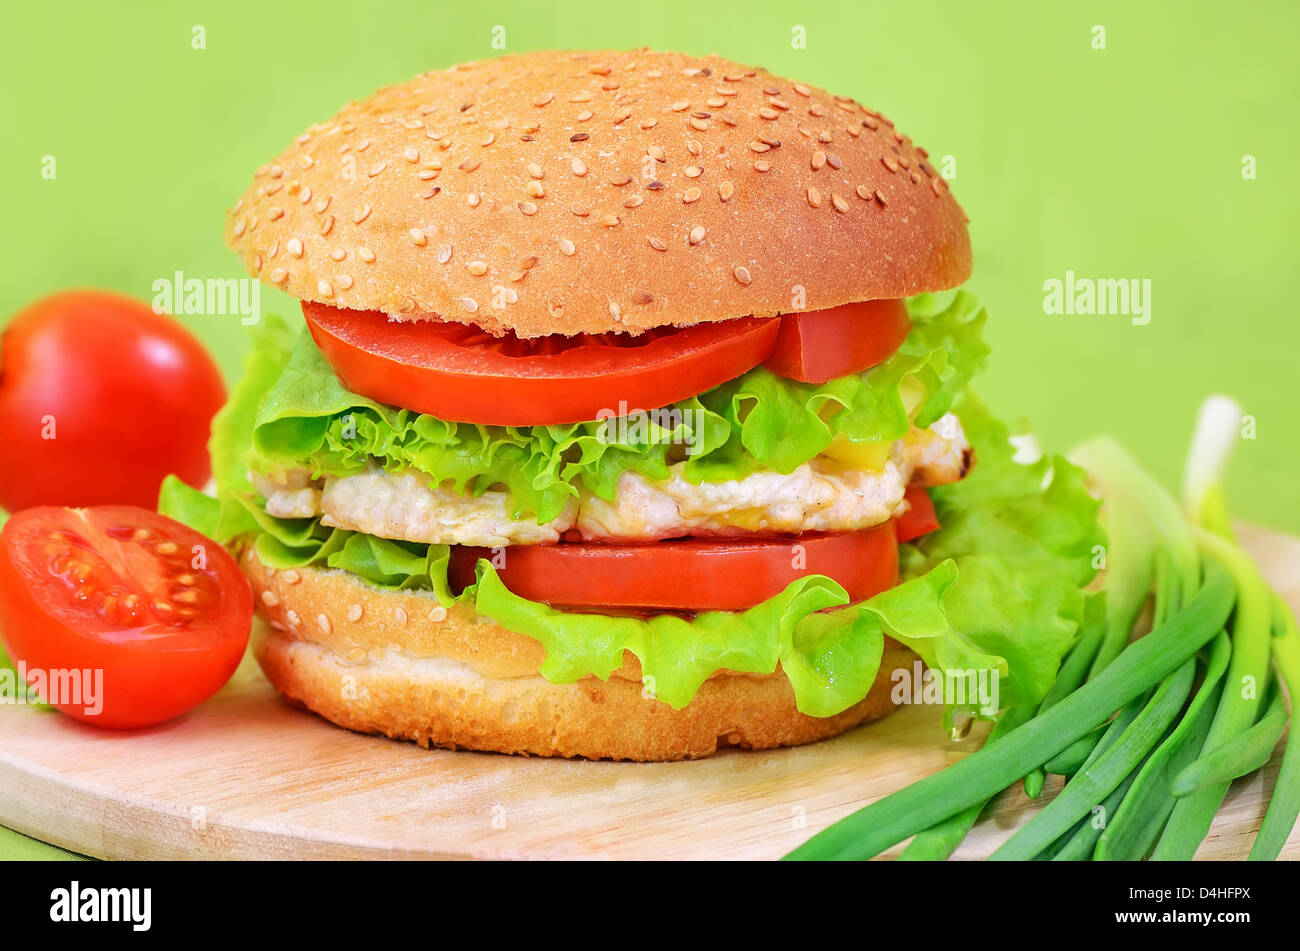 Burger fast food on a kitchen board with tomatoes and green onions - Stock Image